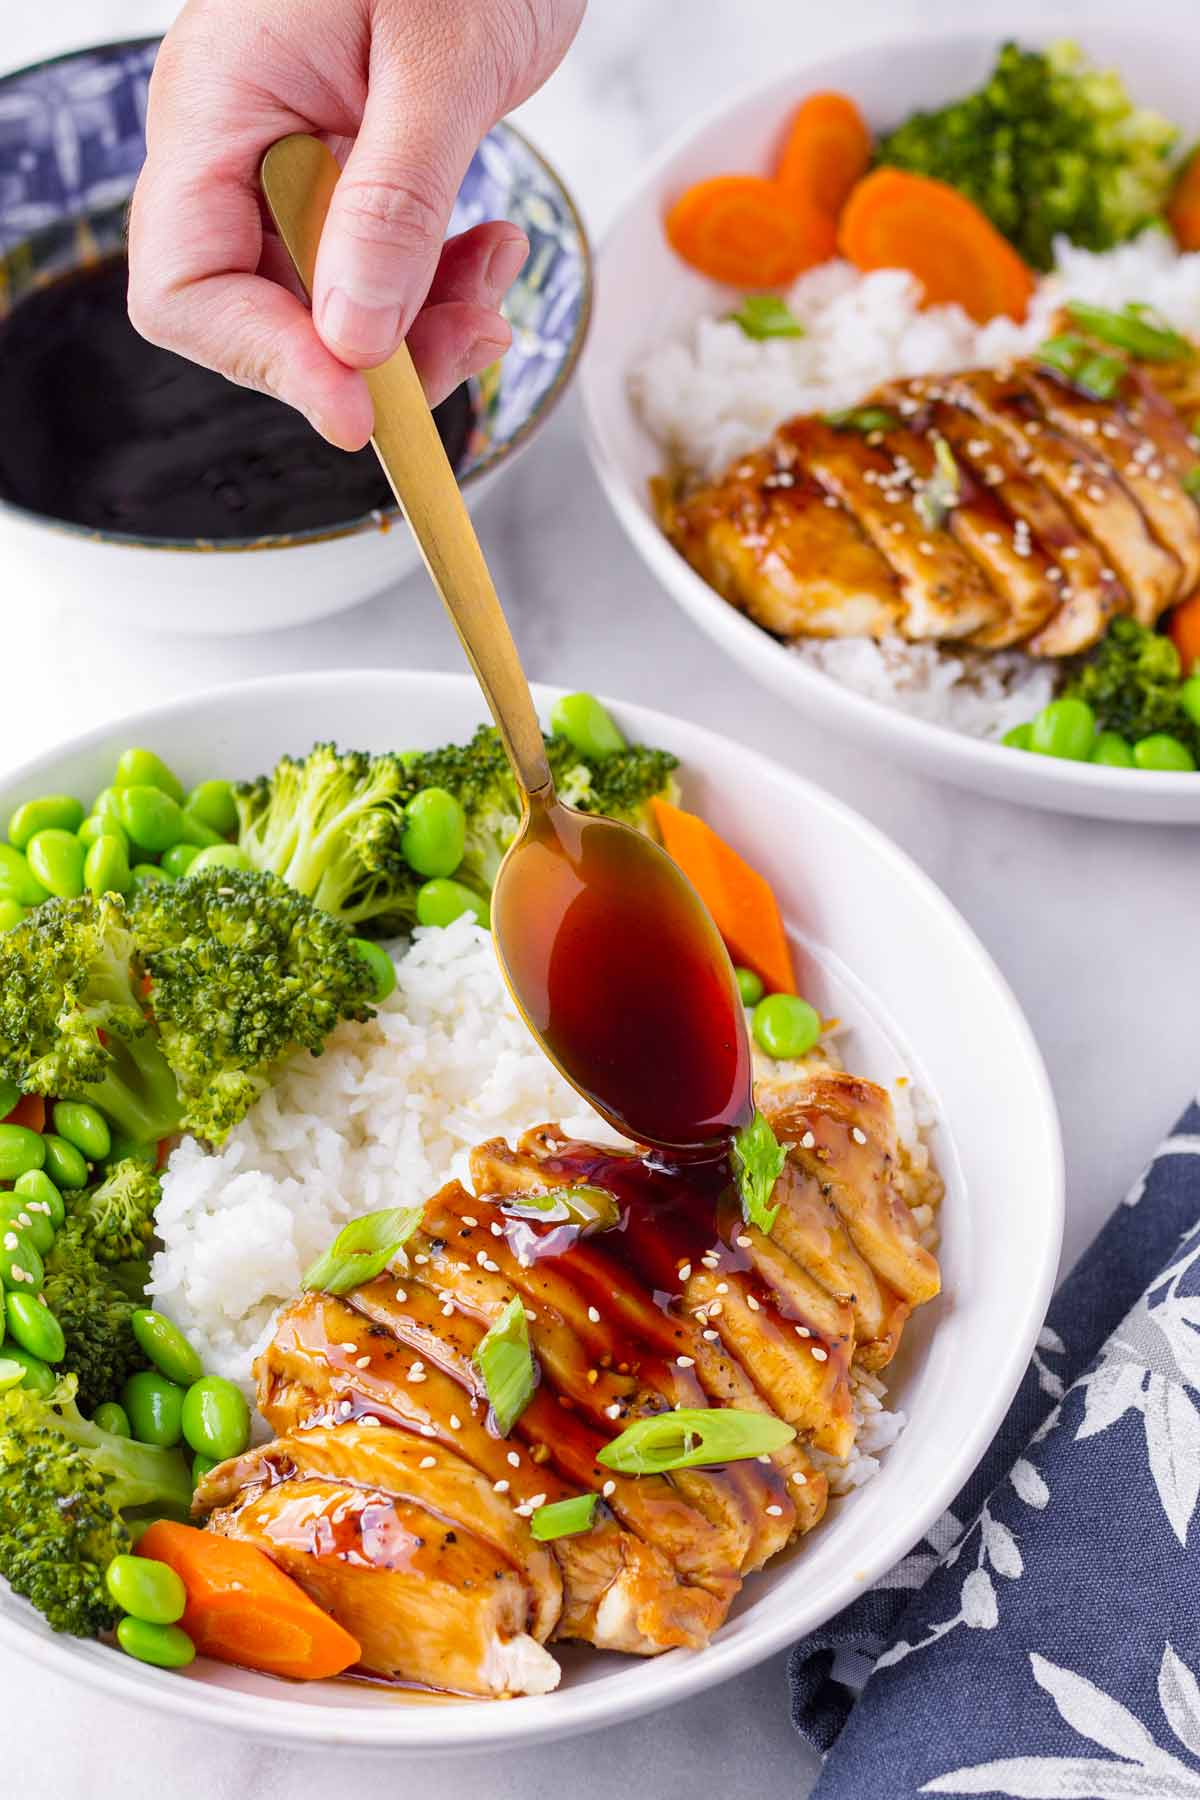 spooning teriyaki sauce over sliced chicken served with rice and veggies